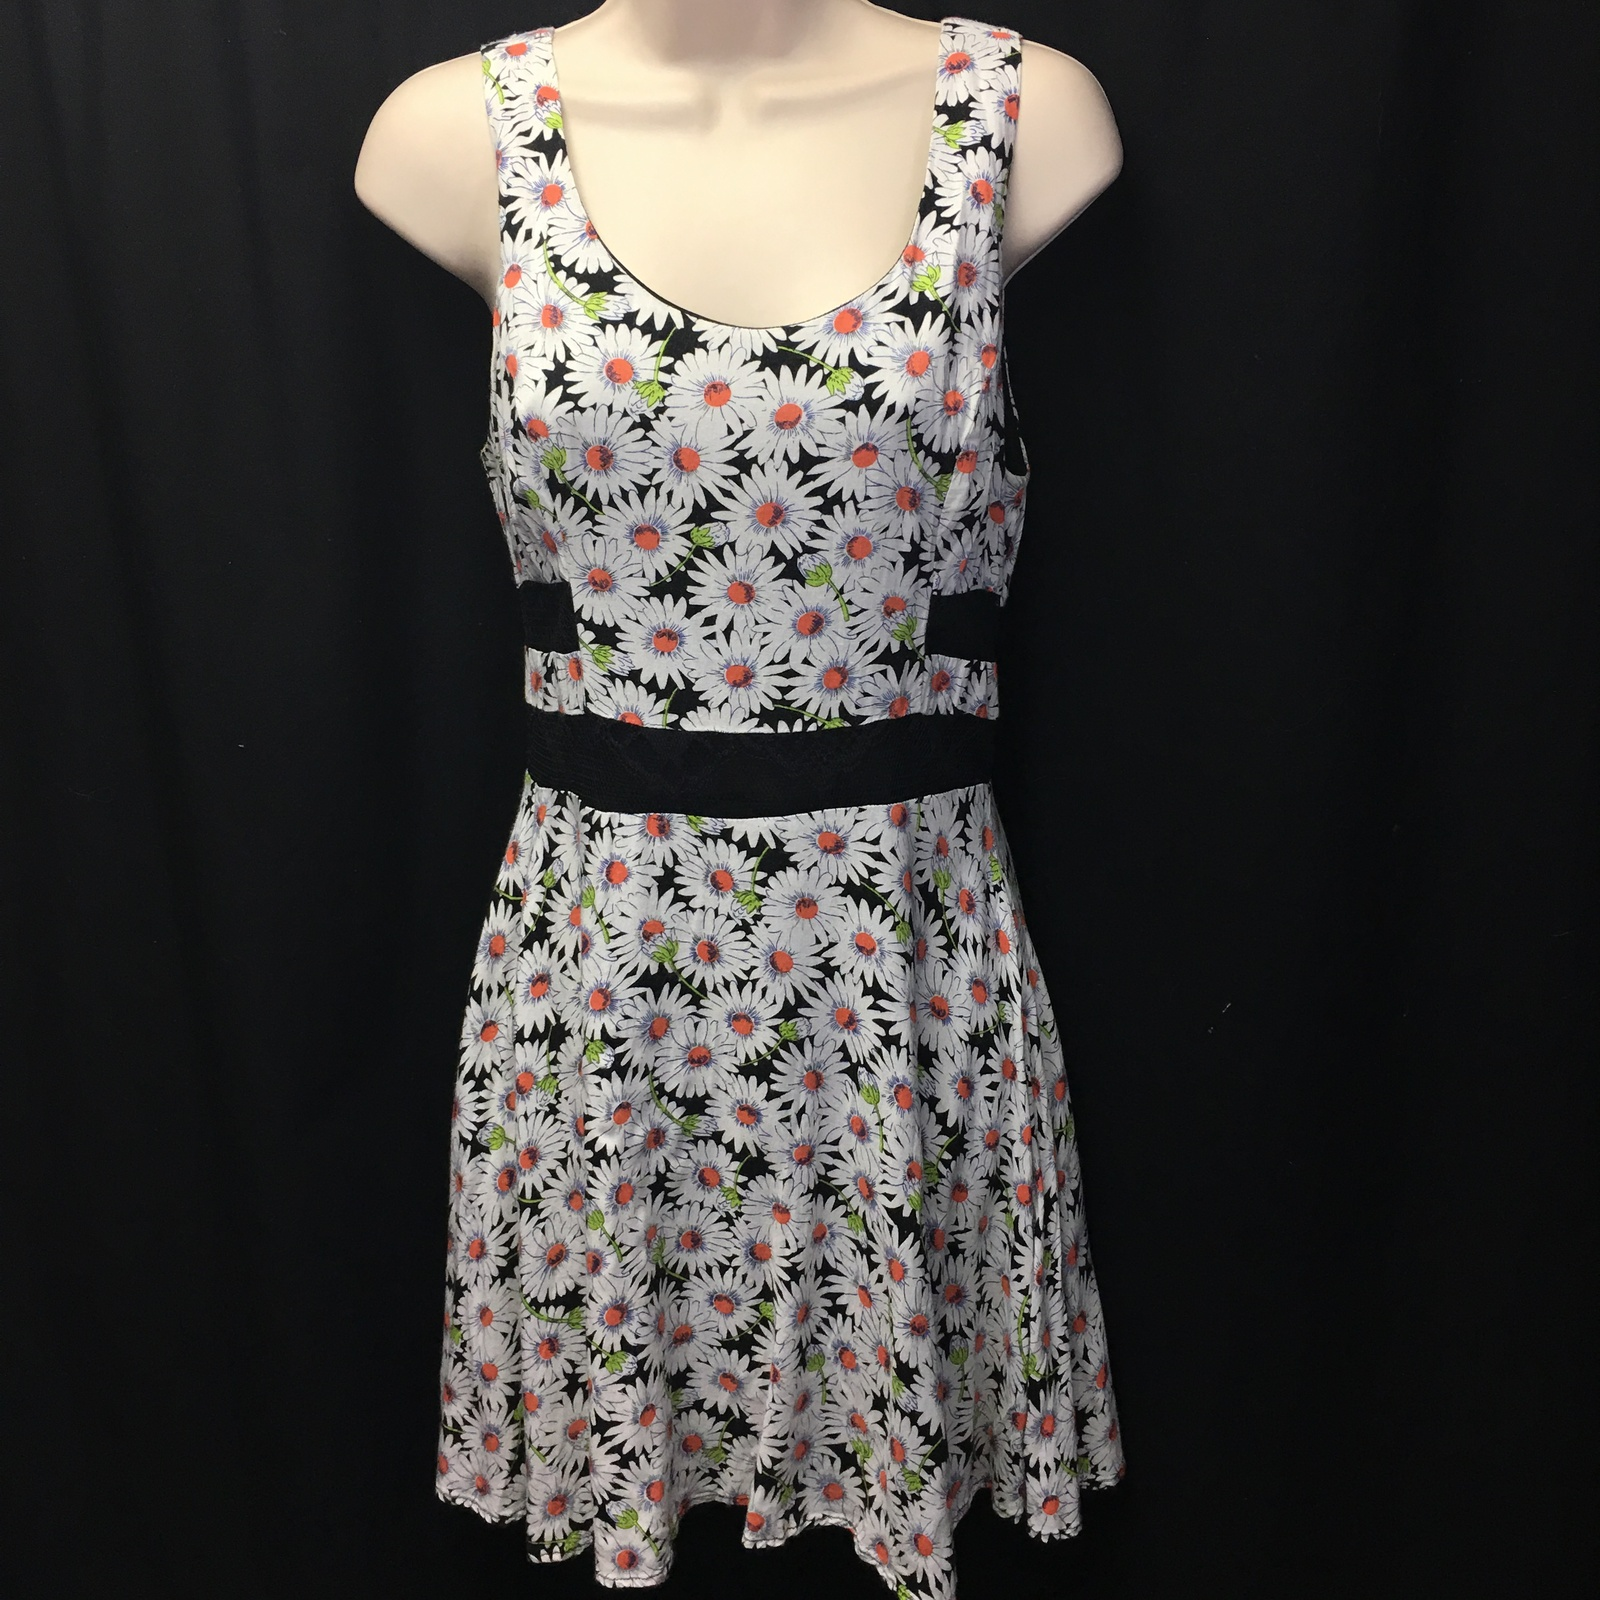 LUSH Dress Floral Print Lace See Through Stomach Size Medium